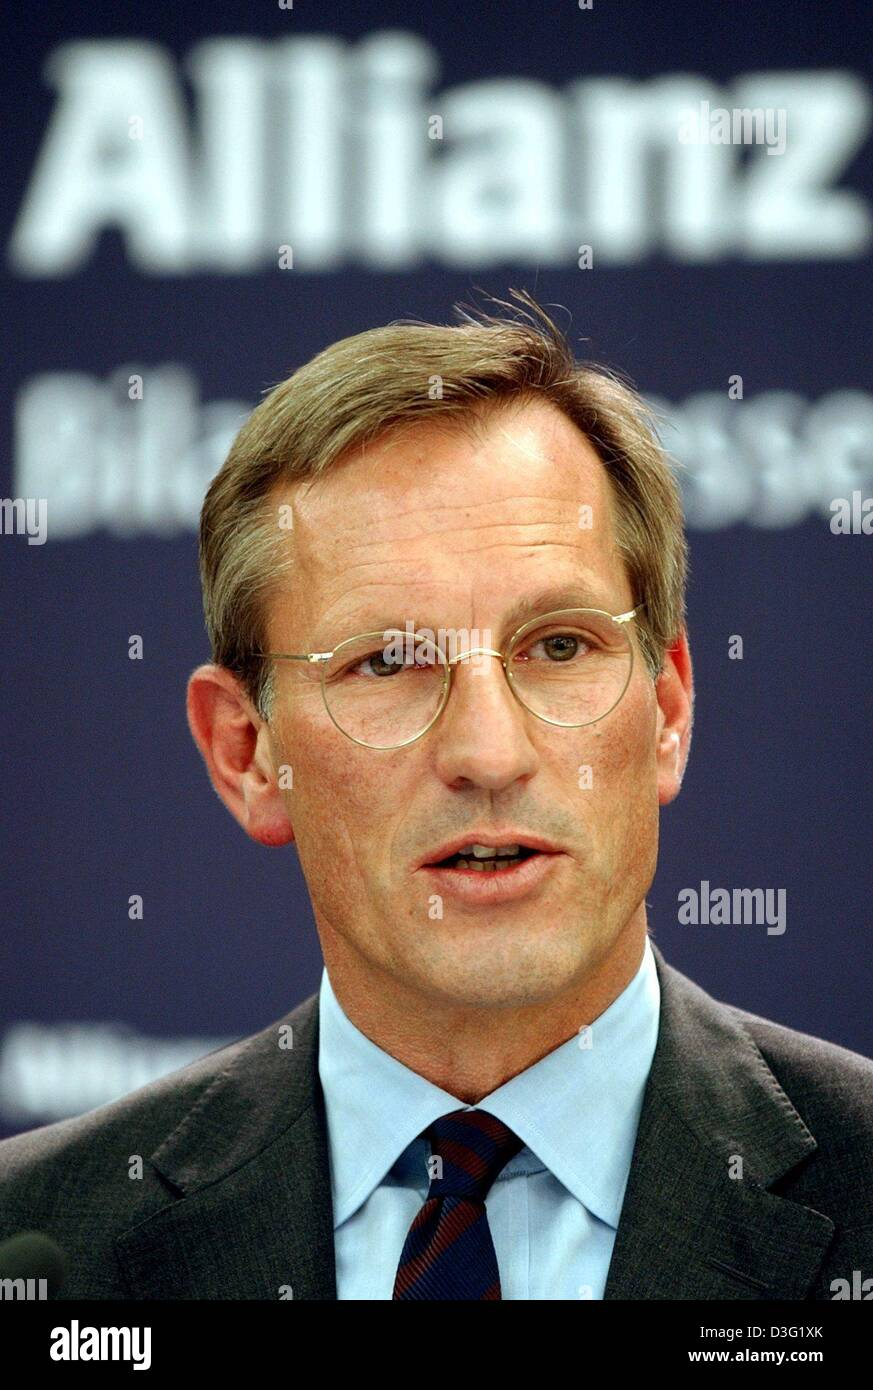 (dpa) - Michael Diekmann, new CEO of the Allianz AG, the financial services and insurance provider, speaks during a press conference in Munich, Germany, 20 March 2003. Diekmann continues the company policy of providing integrated financial services by holding on to the lossy Dresdner Bank. The Allianz AG wants to raise new capital in billions of Euro after having experienced the fi Stock Photo